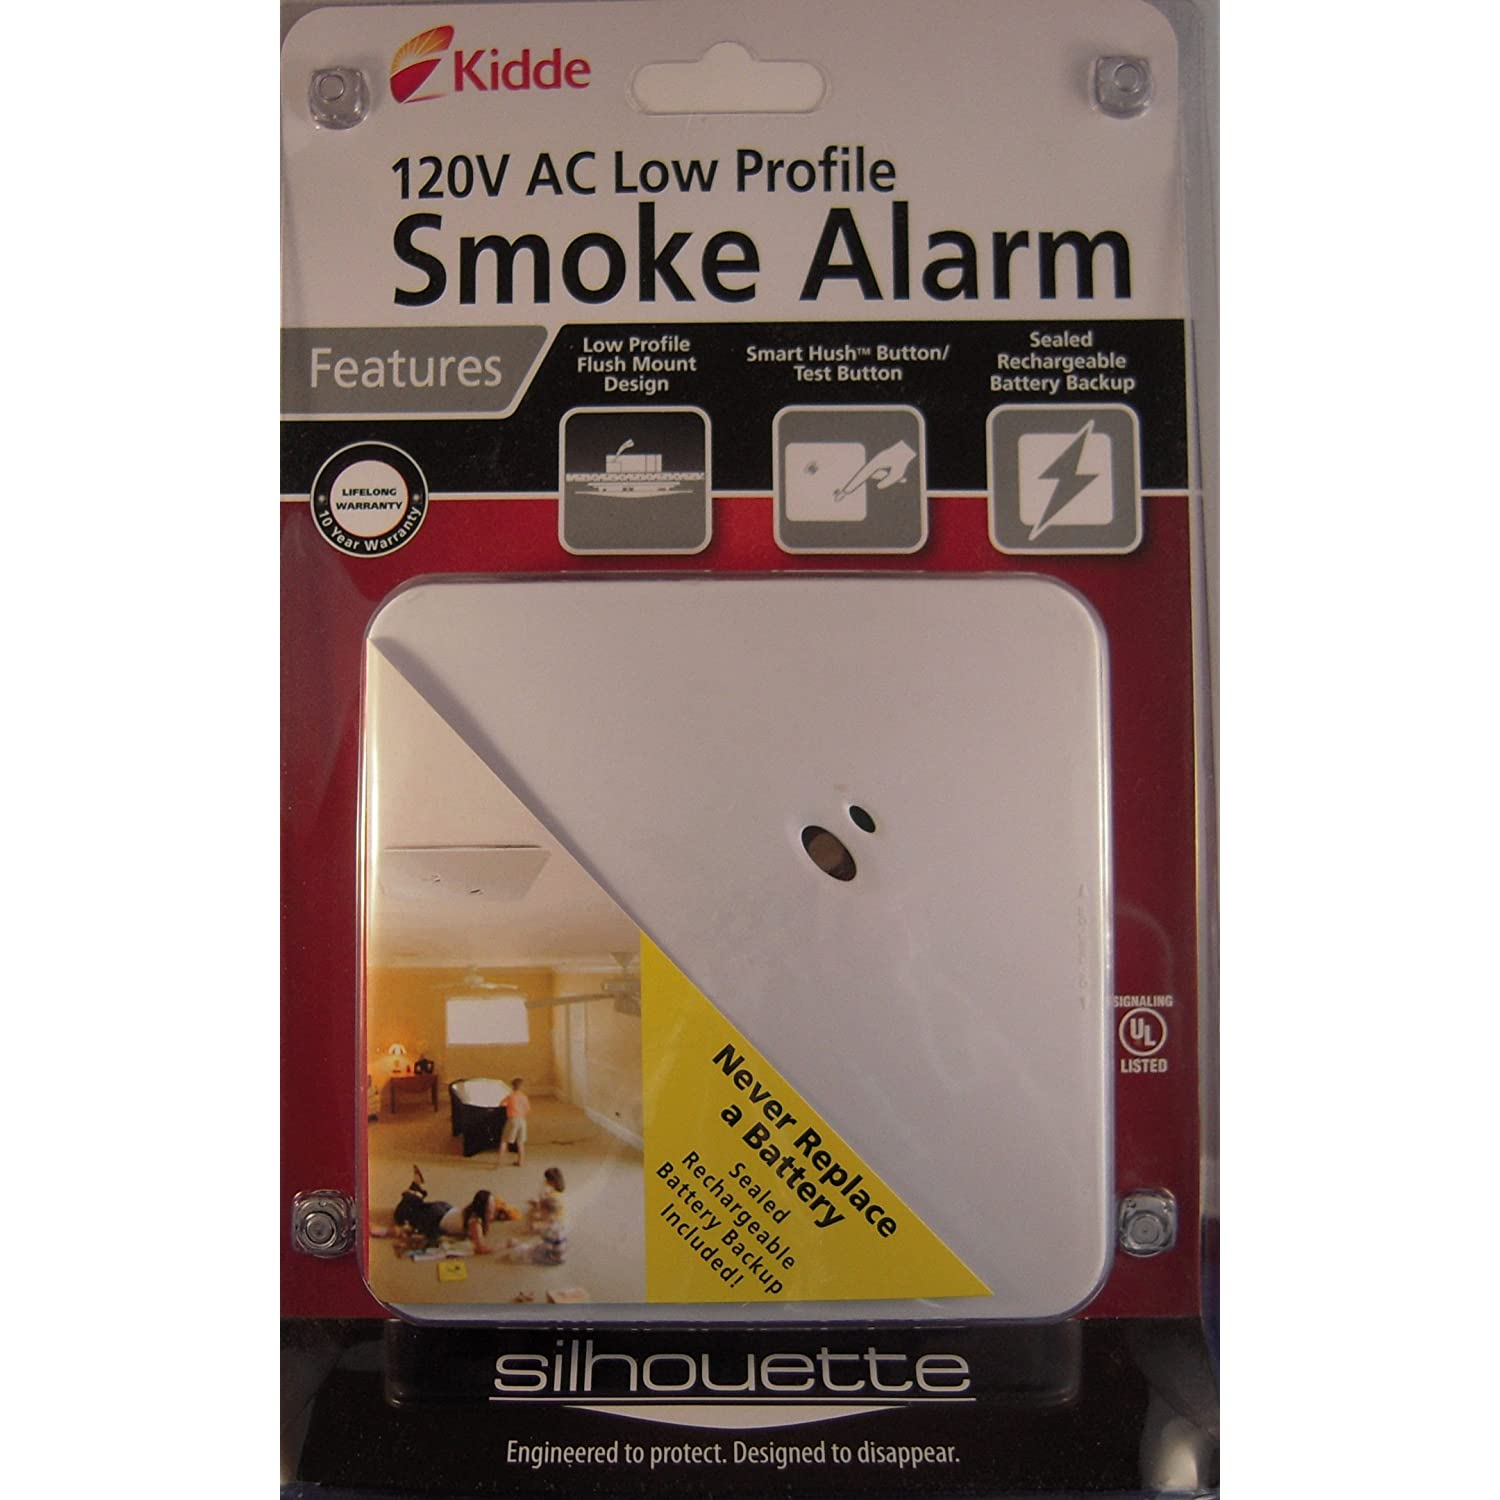 new kidde silhouette smoke alarm 120v hardwired low profile knsmfm i 21007288 ebay. Black Bedroom Furniture Sets. Home Design Ideas